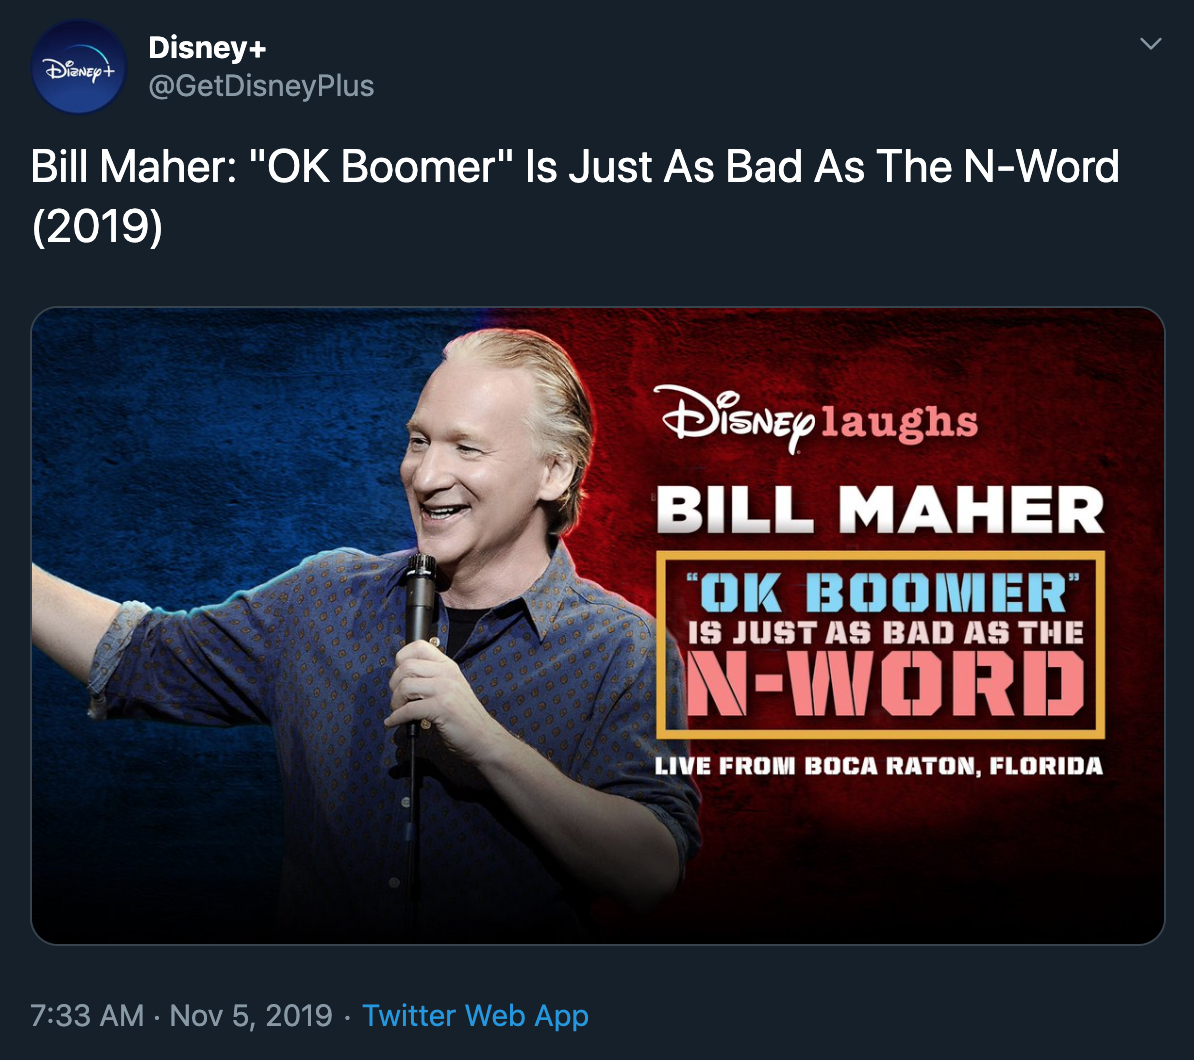 'Bill Maher: 'OK Boomer' Is Just as Bad as the N-Word'